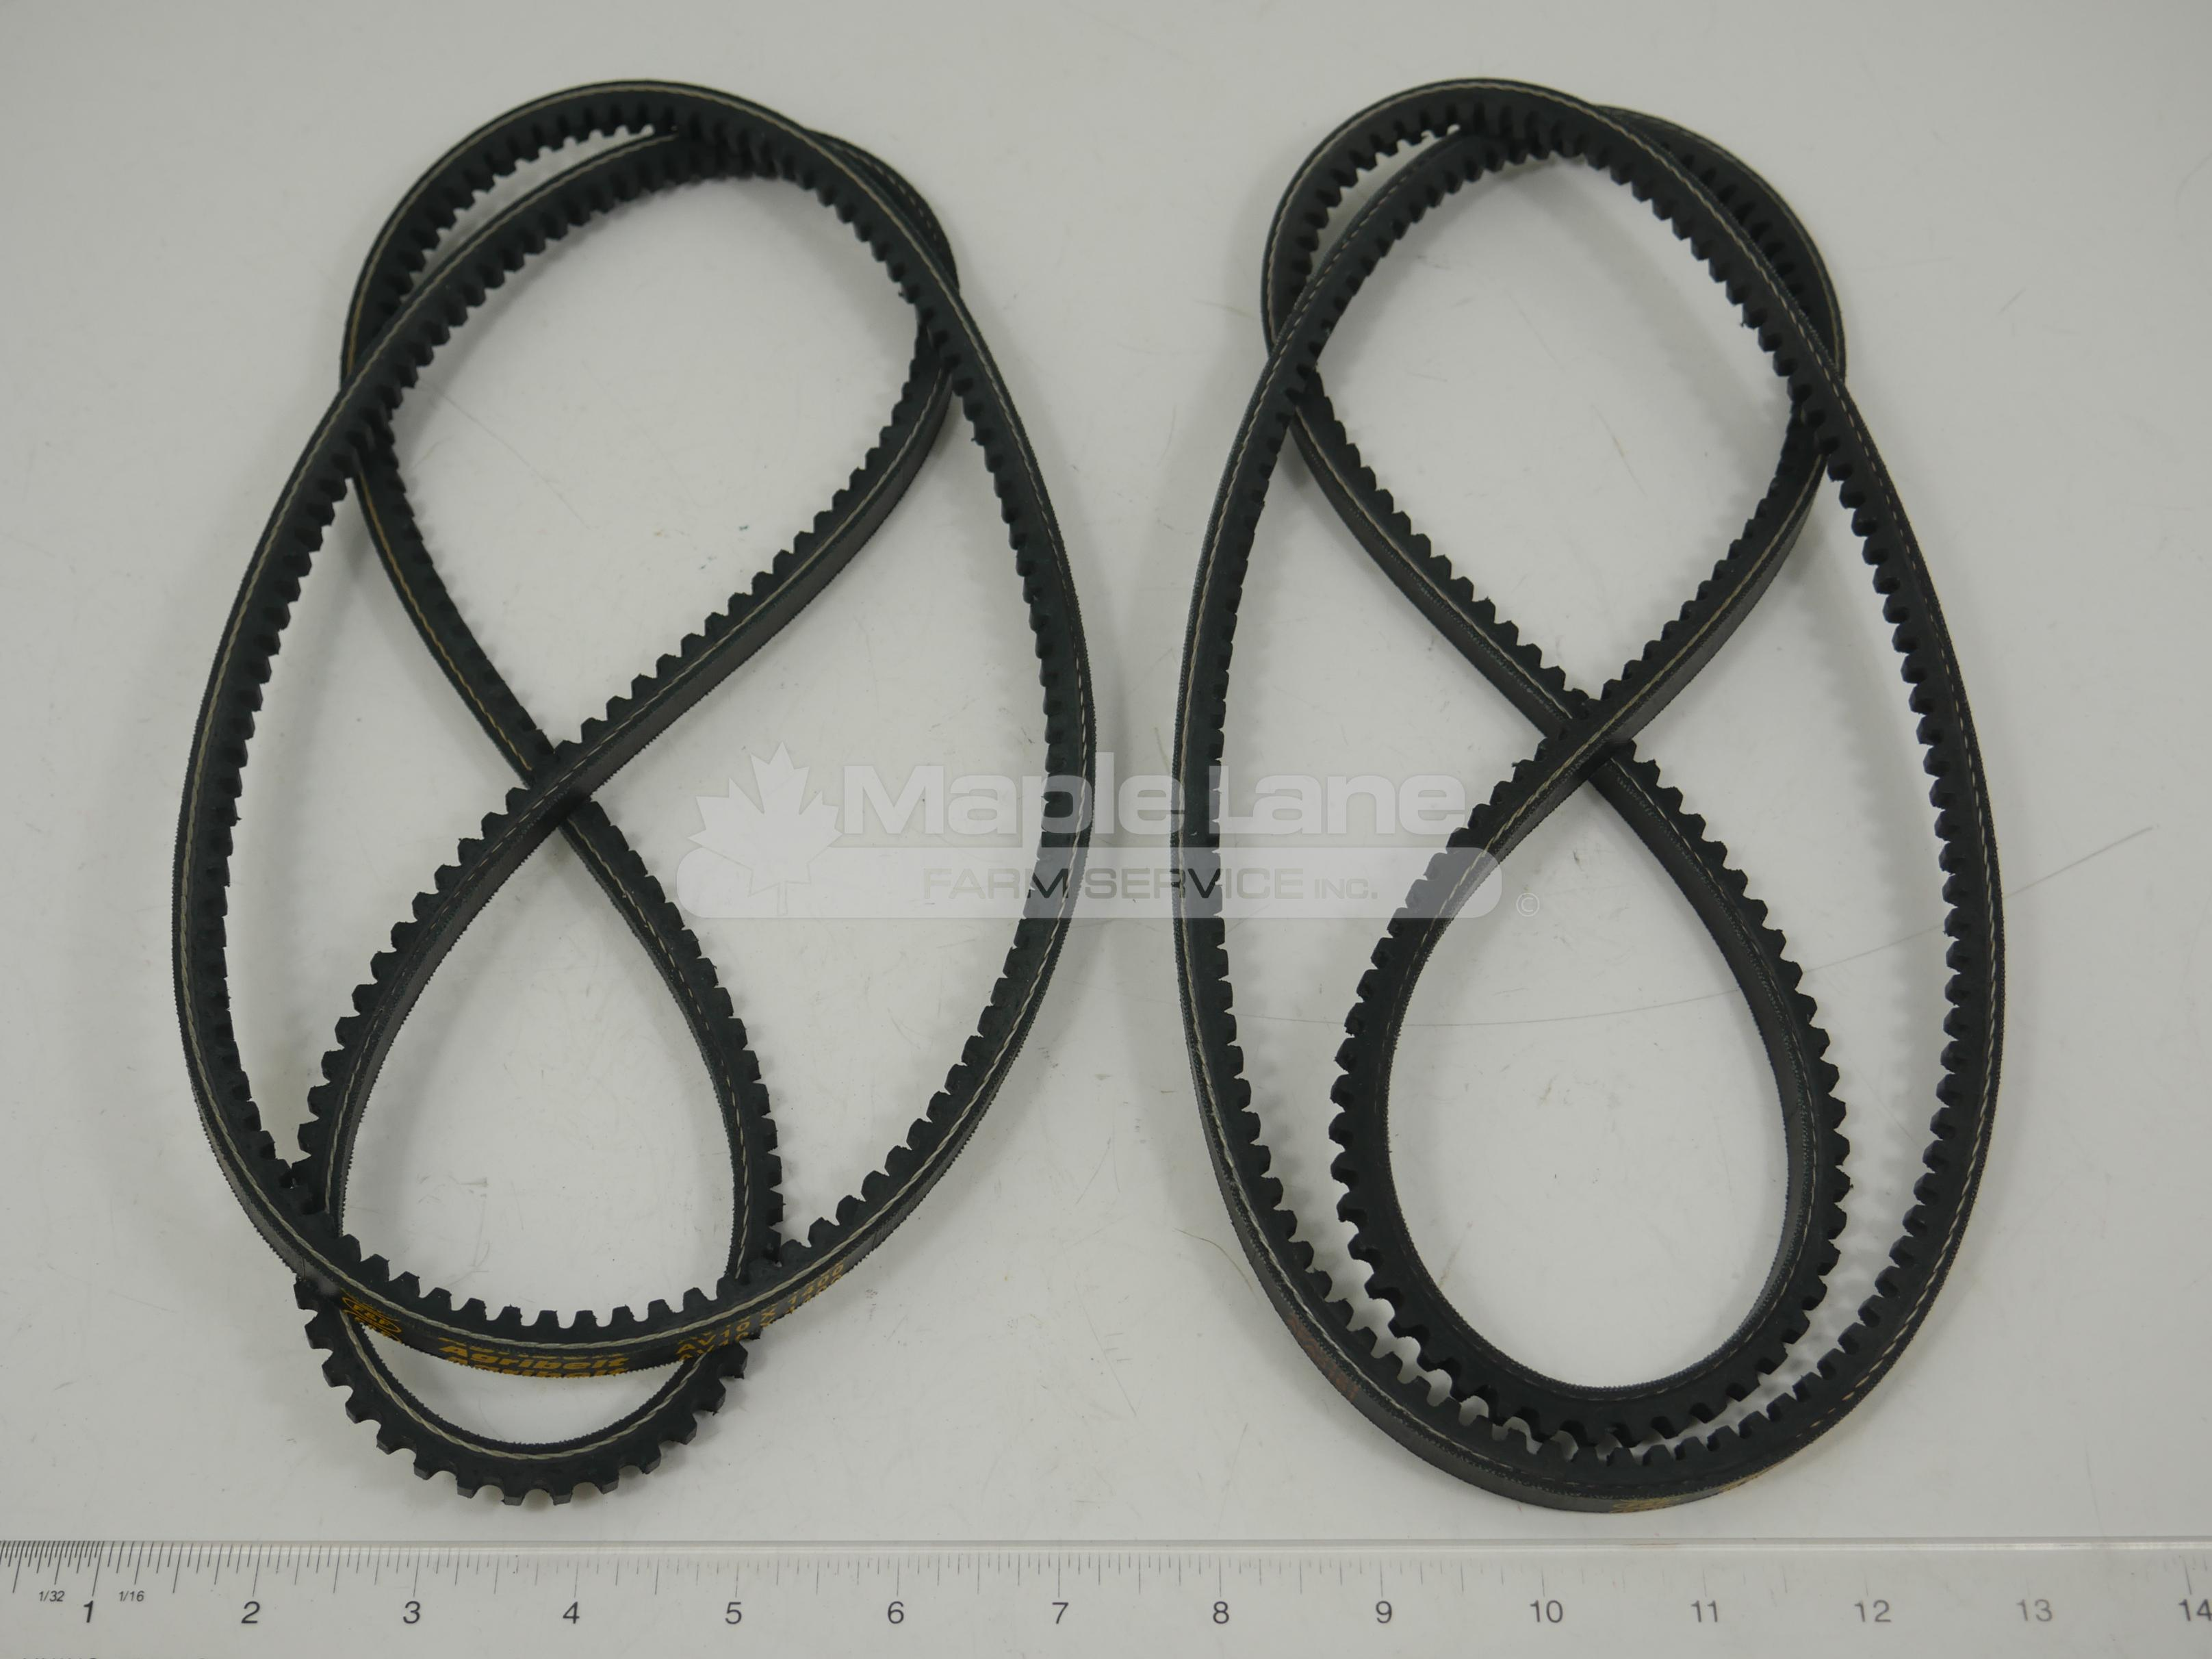 3619356M91 Matching Belt Set